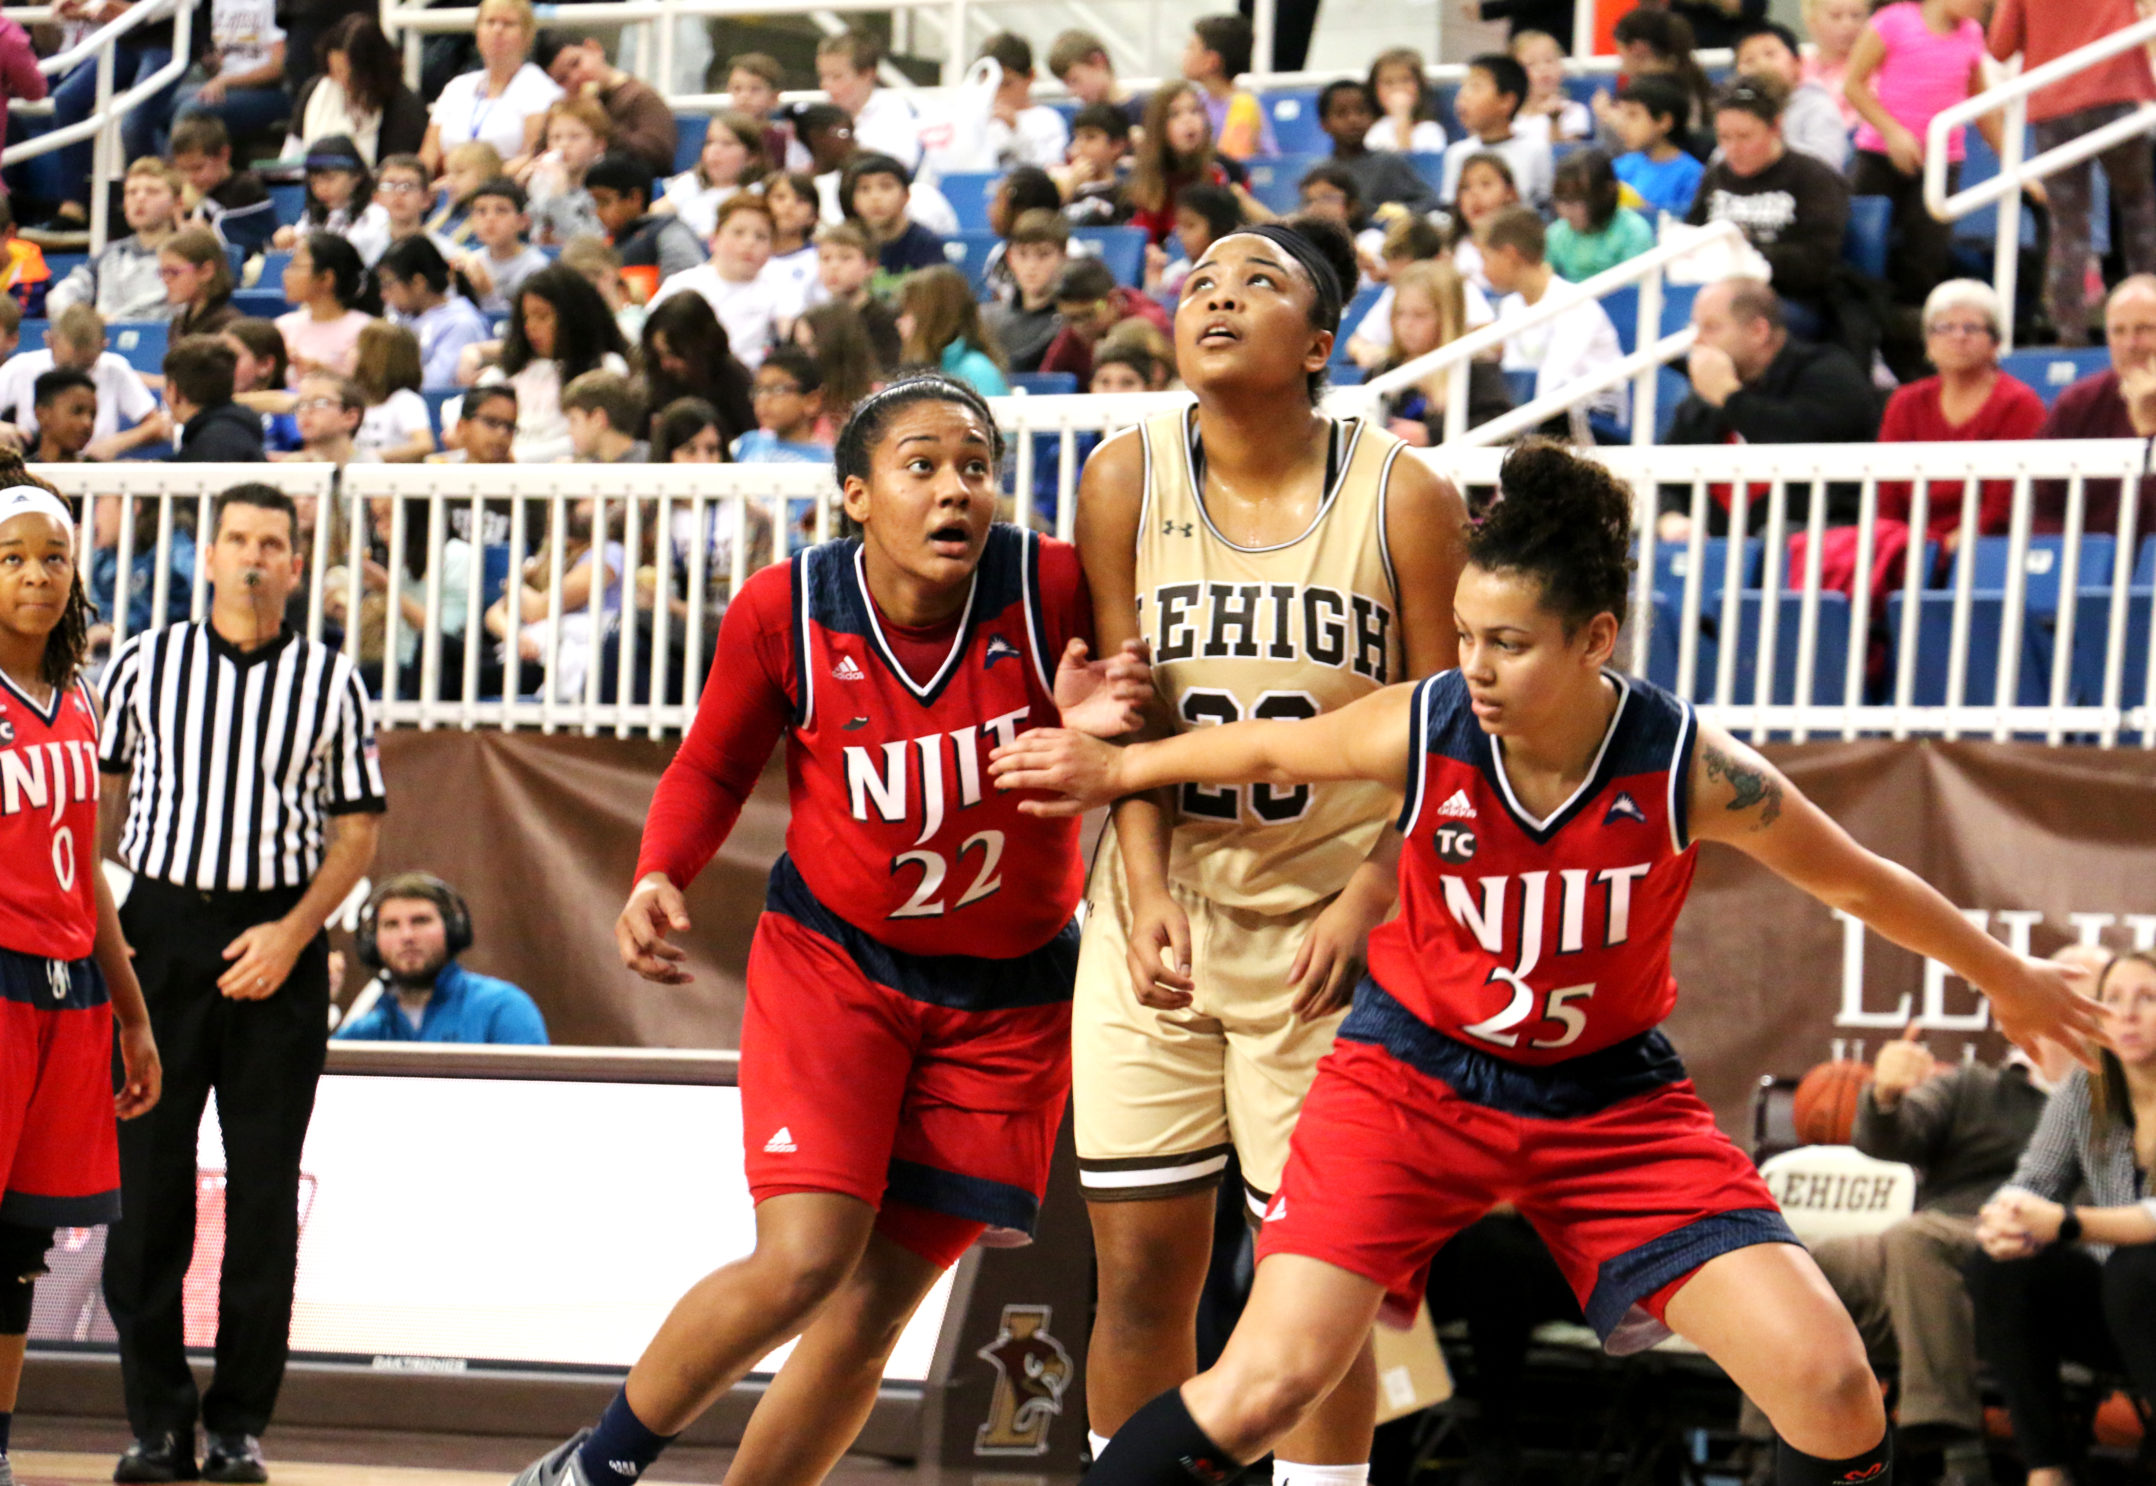 Senior guard Quinci Mann is blocked by two NJIT defenders at Stabler Arena Wednesday morning. The Mountain Hawks recorded at total of 24 bench points as opposed to the Highlanders five (Maddy Hite/B&W Staff).